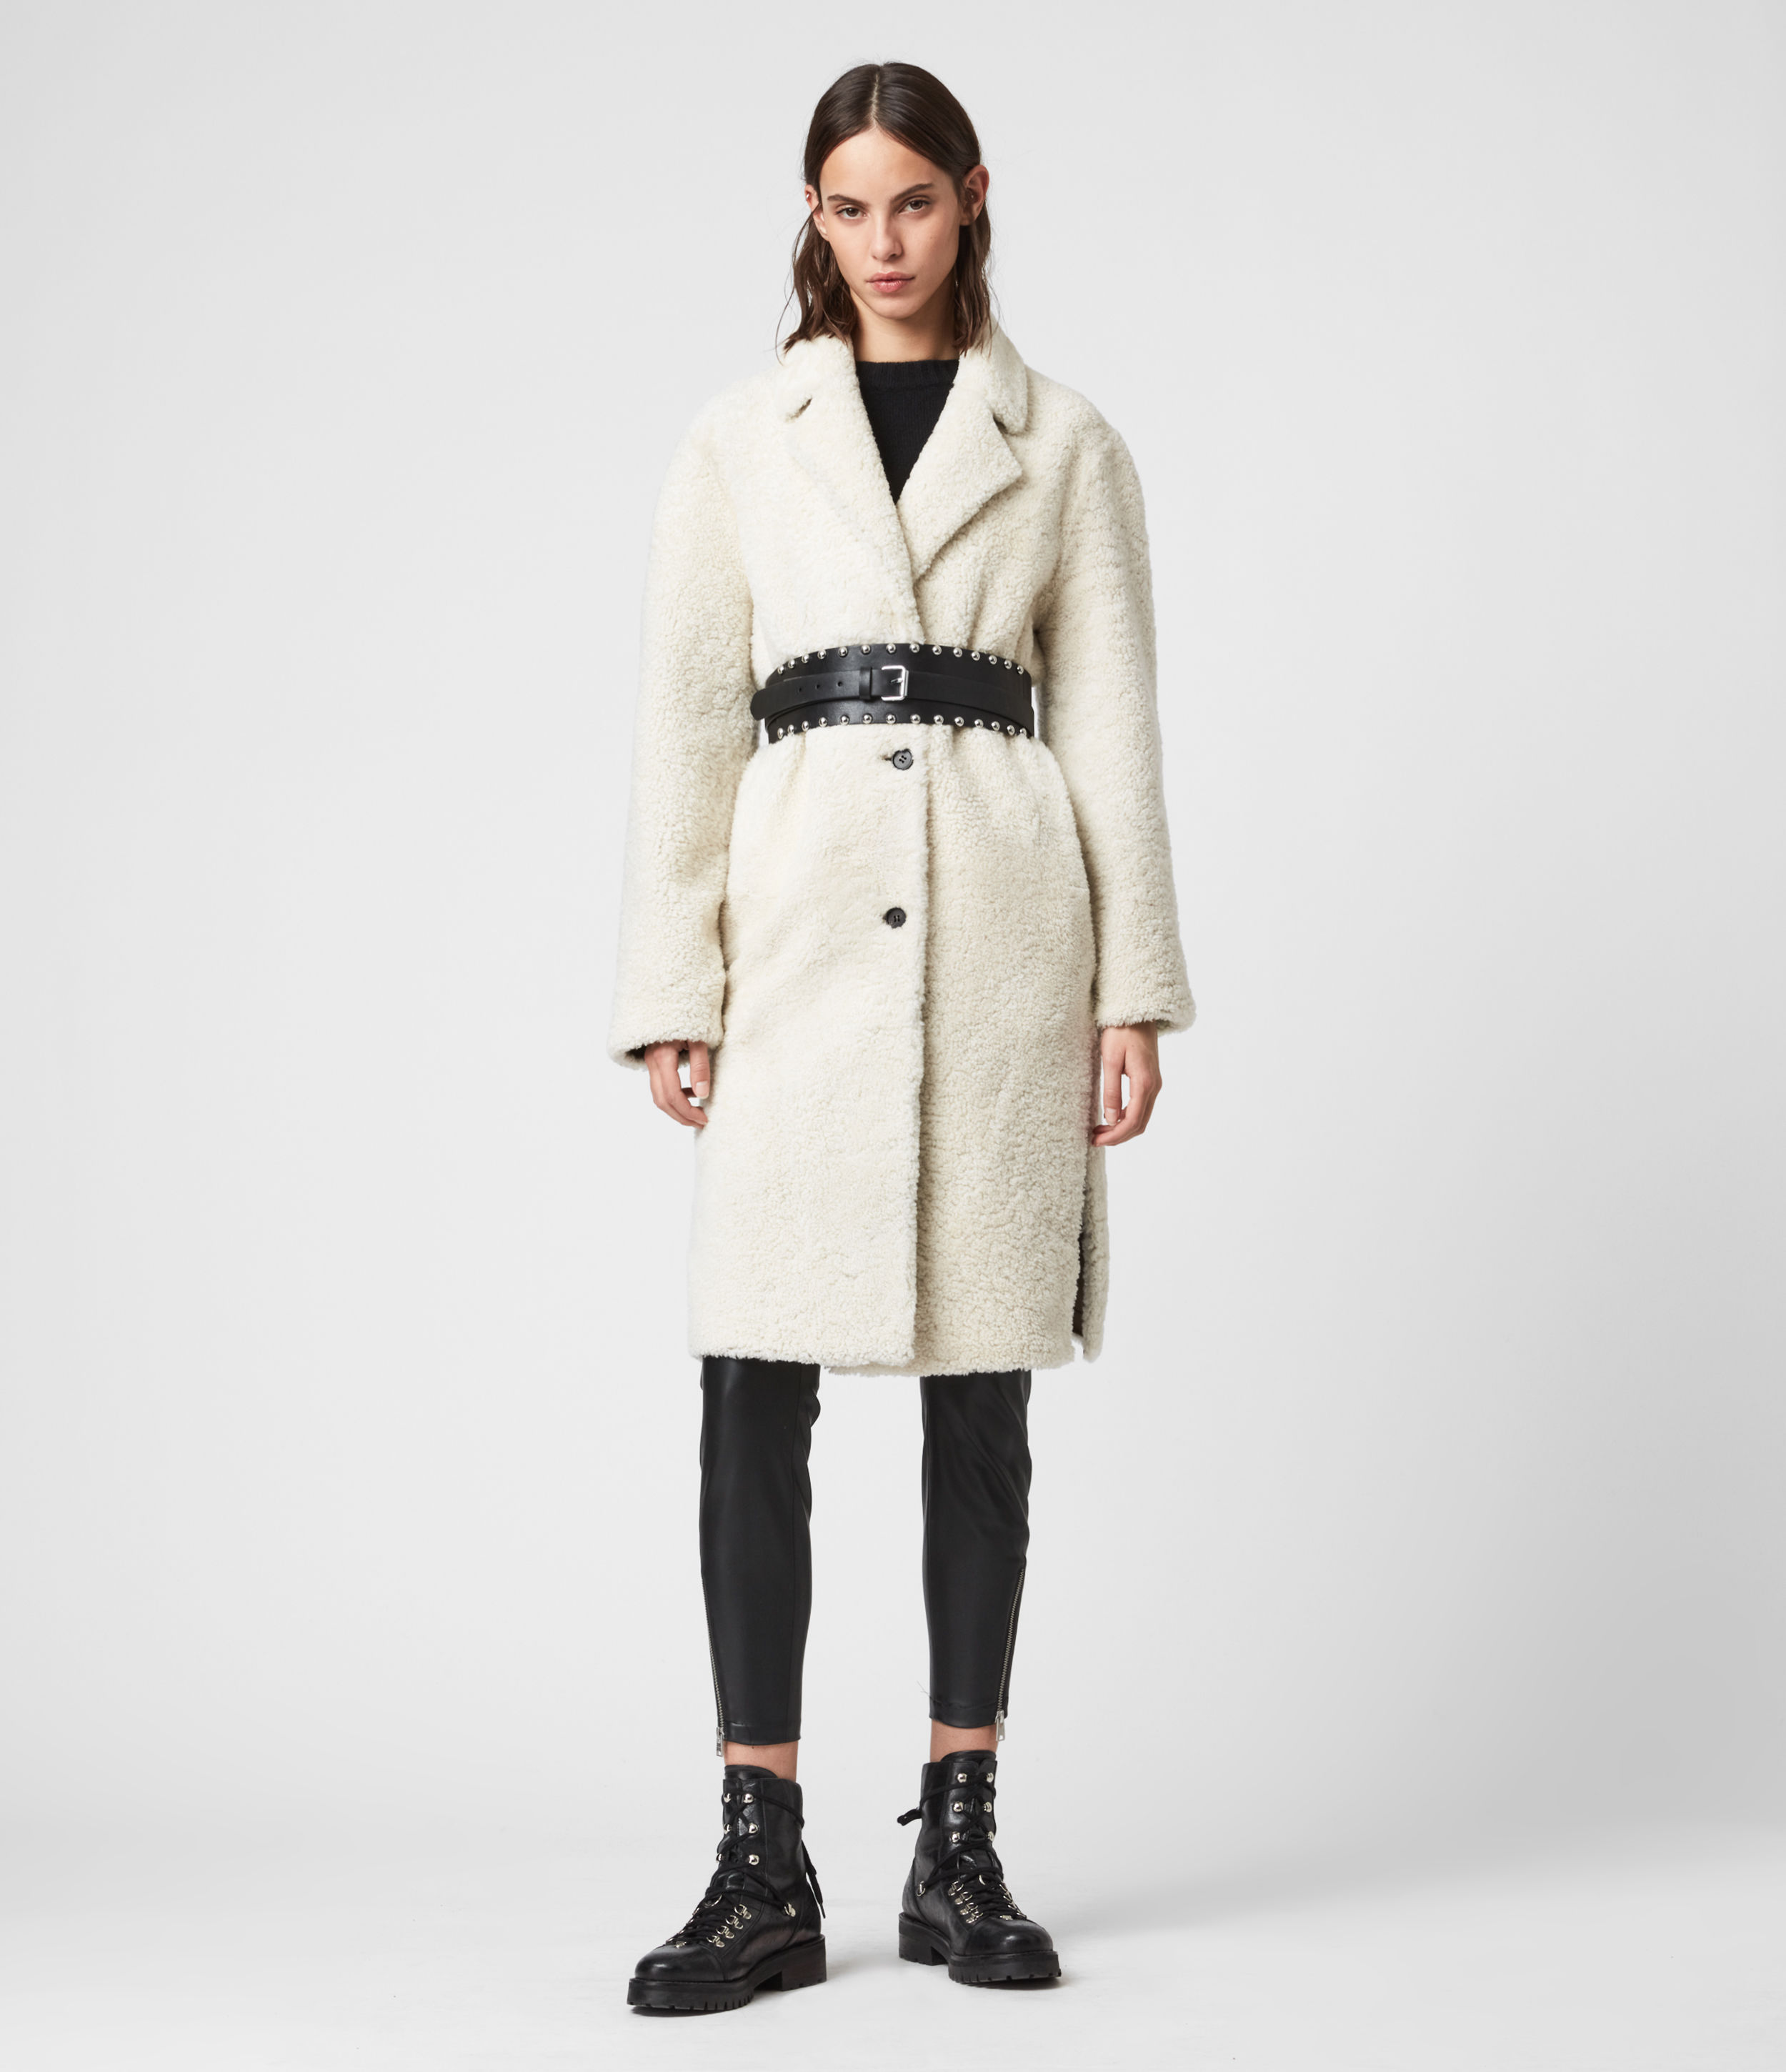 AllSaints Women's Sheepskin Dyed Tia Reversible Shearling Coat, White and Brown, Size: S